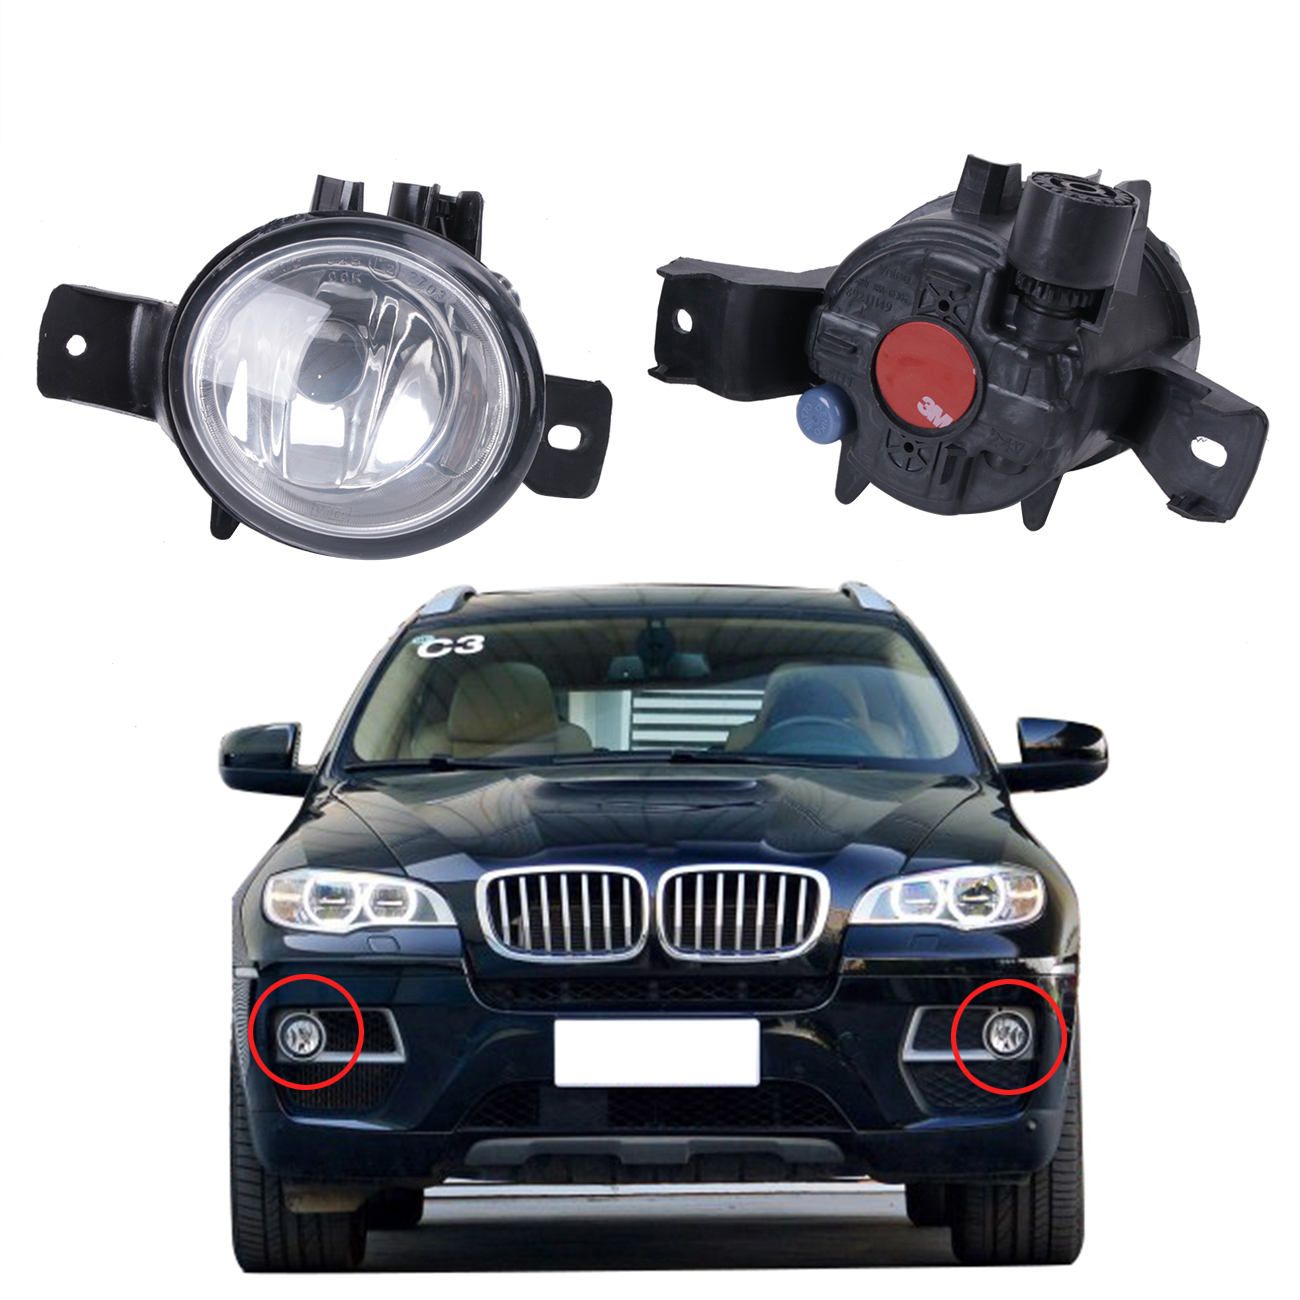 Service Manual Change Headl Bulb In A 2011 Bmw X6 How To Replace 2013 Bmw X6 M Headlight How